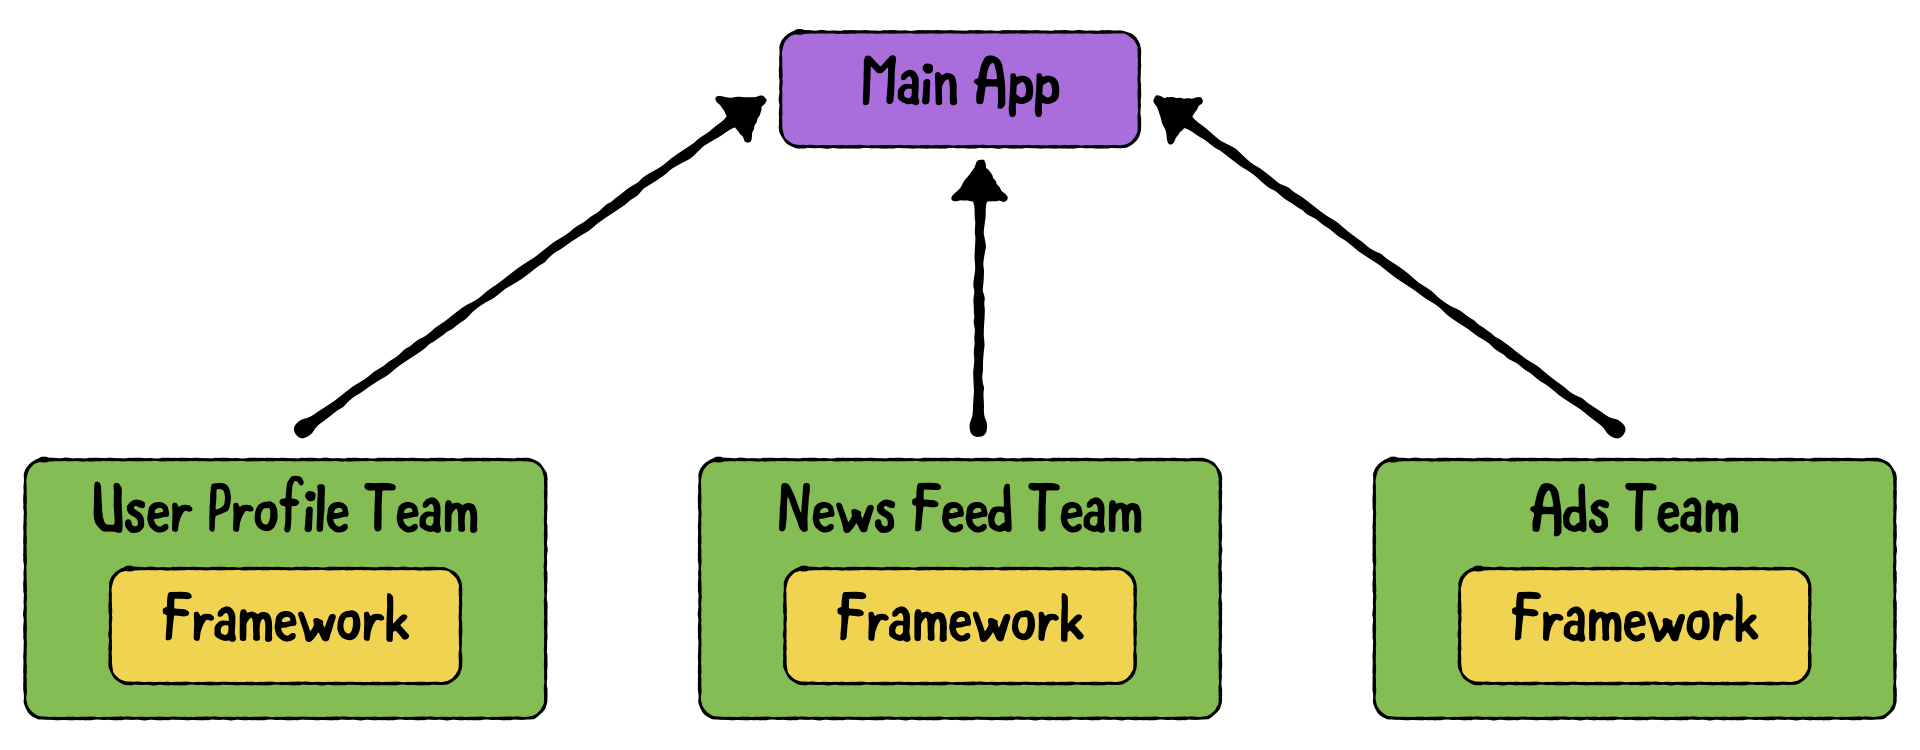 An example of a social media app. Each team builds a framework and the main app depends on those frameworks.